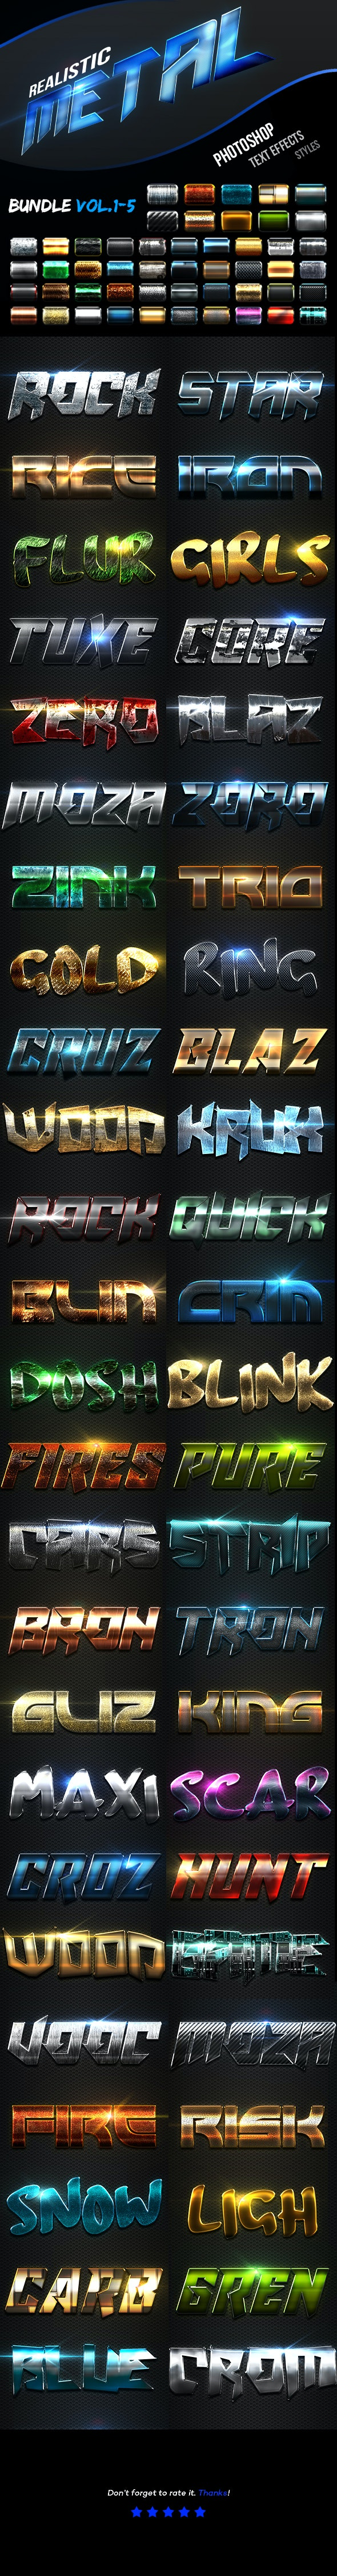 Realistic Metal Text Effects Bundle I - Text Effects Actions